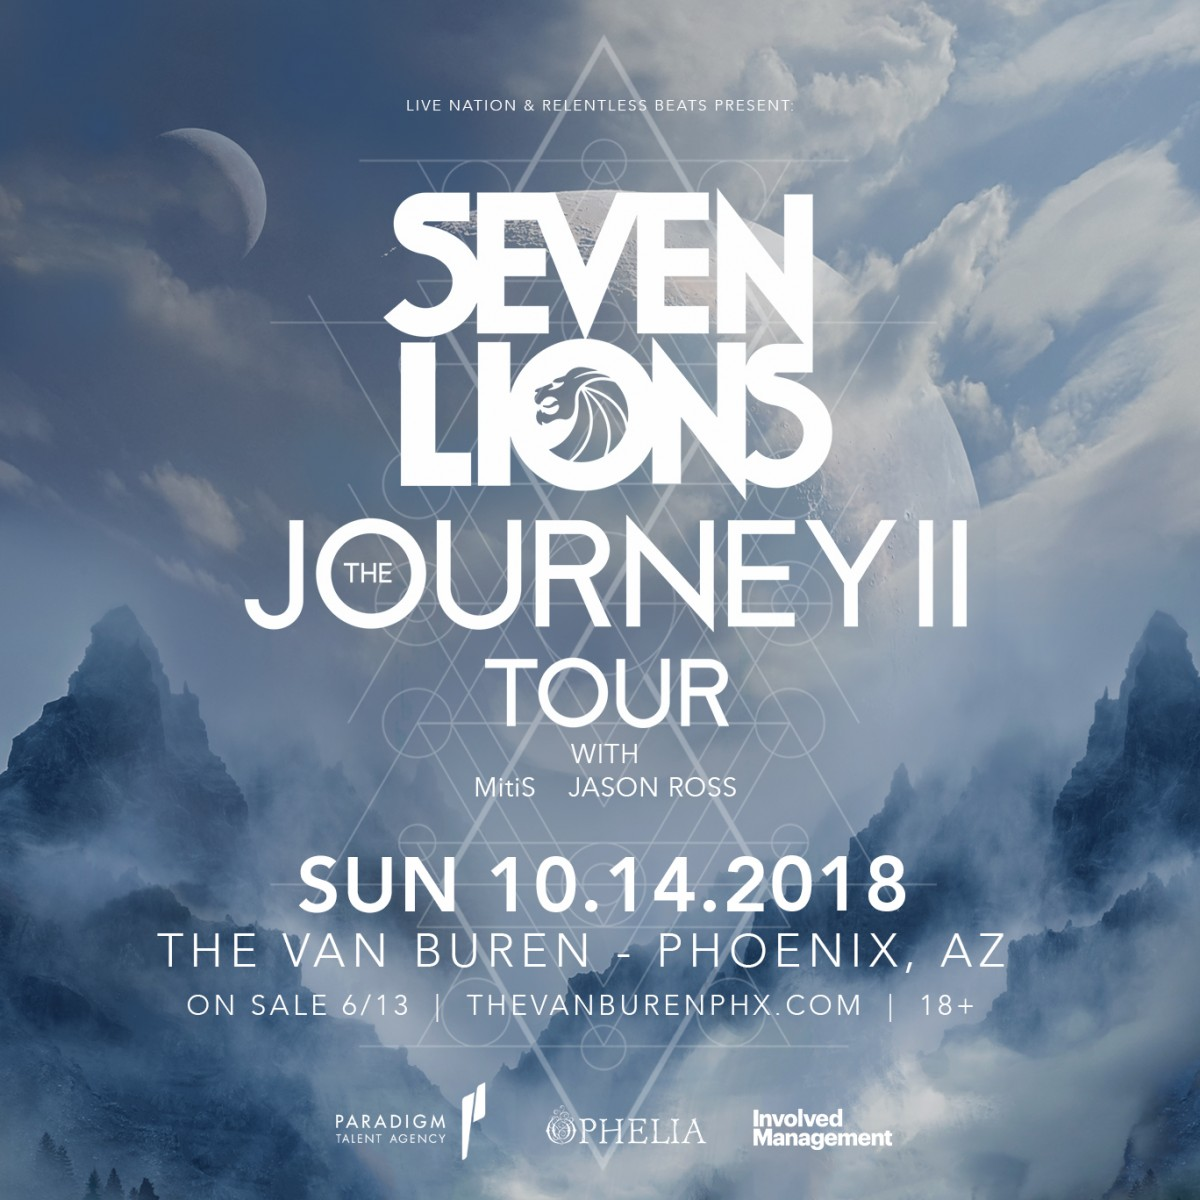 Flyer for Seven Lions